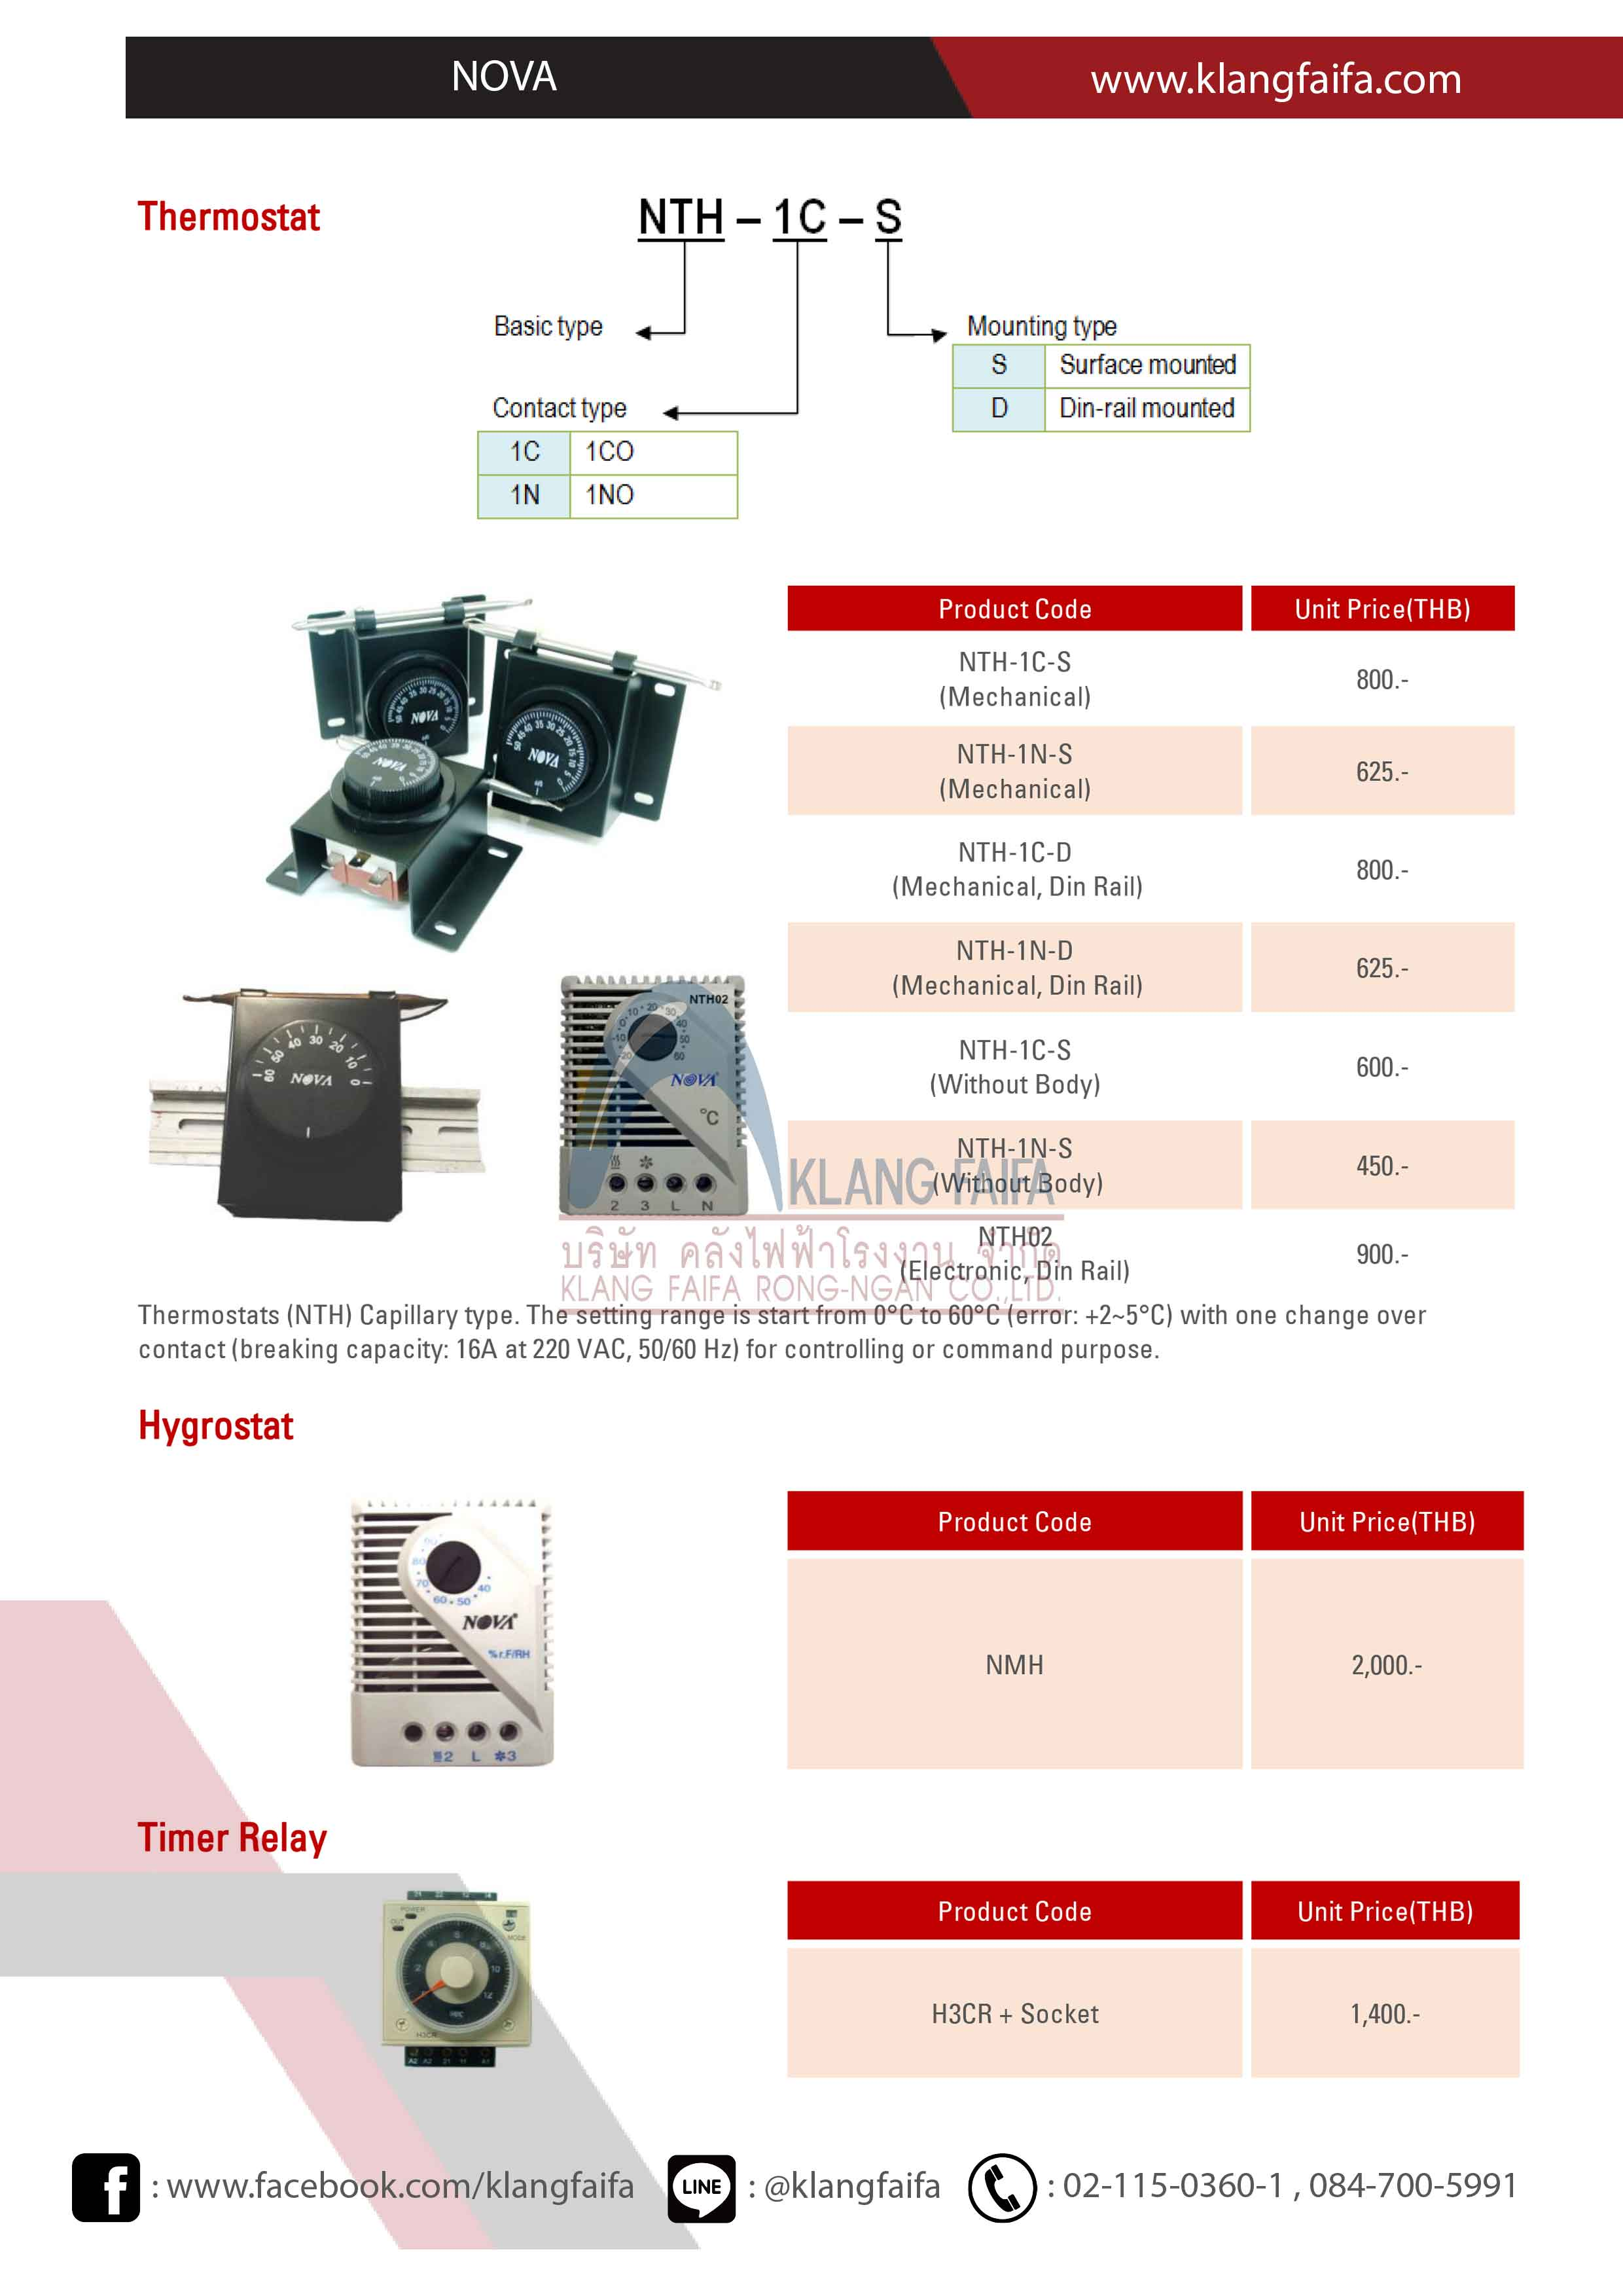 Pilot lamp, LED lamp, Push button switch, Selector switch, Semaphore, Indicator, Minature Buzzer, Space Heater, Thermostat